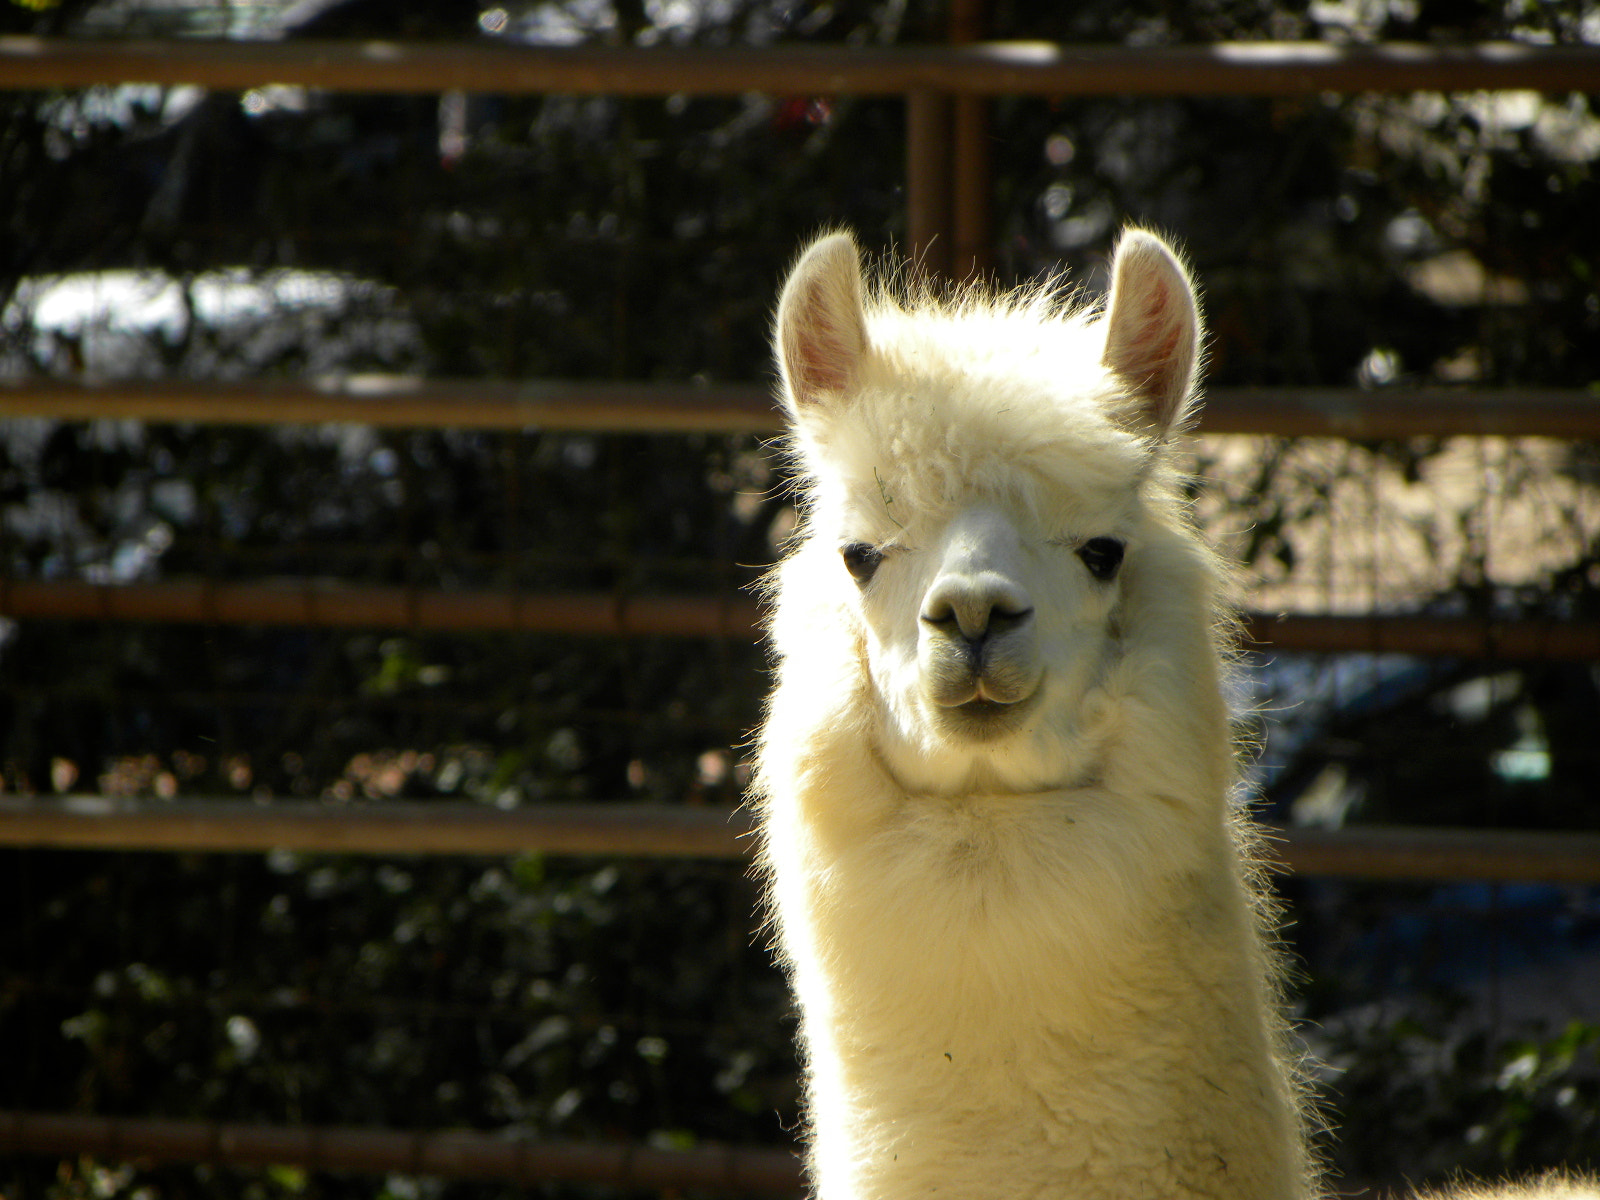 Photograph Alpaca by Katayoon Dej-Panah on 500px